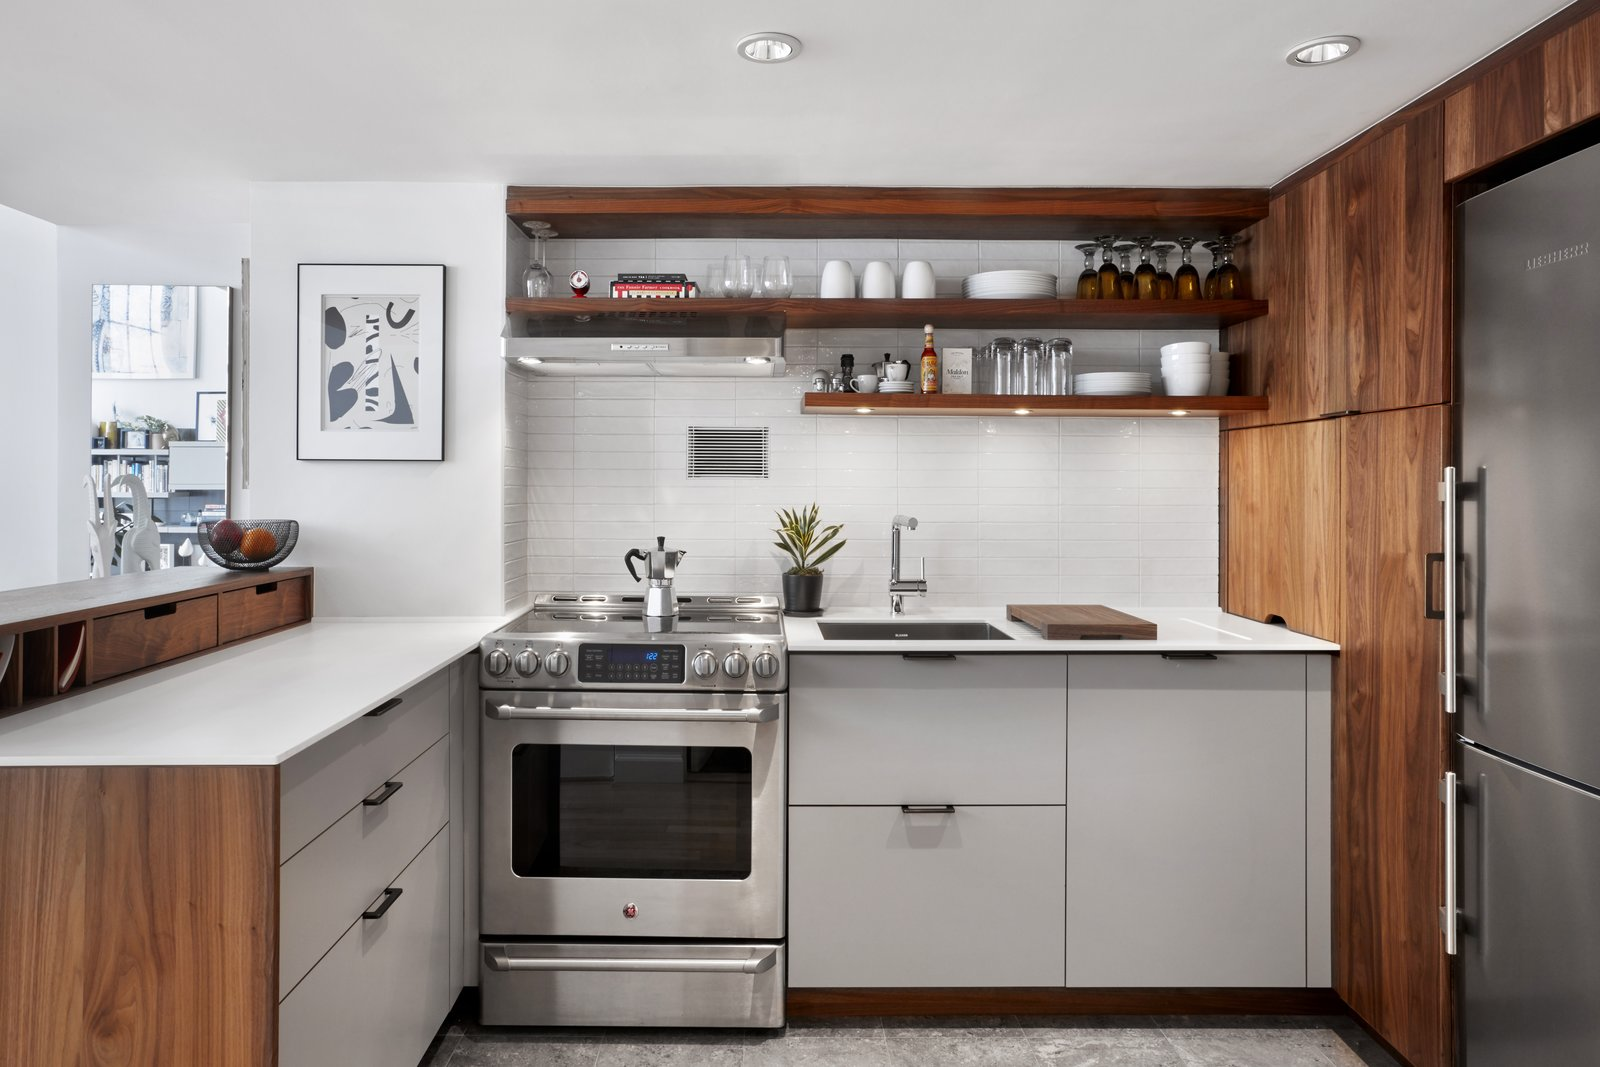 Kitchen, Recessed Lighting, Ceramic Tile Backsplashe, Subway Tile Backsplashe, Ceiling Lighting, Range, Refrigerator, Range Hood, Wood Cabinet, Drop In Sink, and Wine Cooler Refrigerator by Liebherr Dishwasher by Bosch Wine Refrigerator by Summit  4th Ave./Union Square Apartment